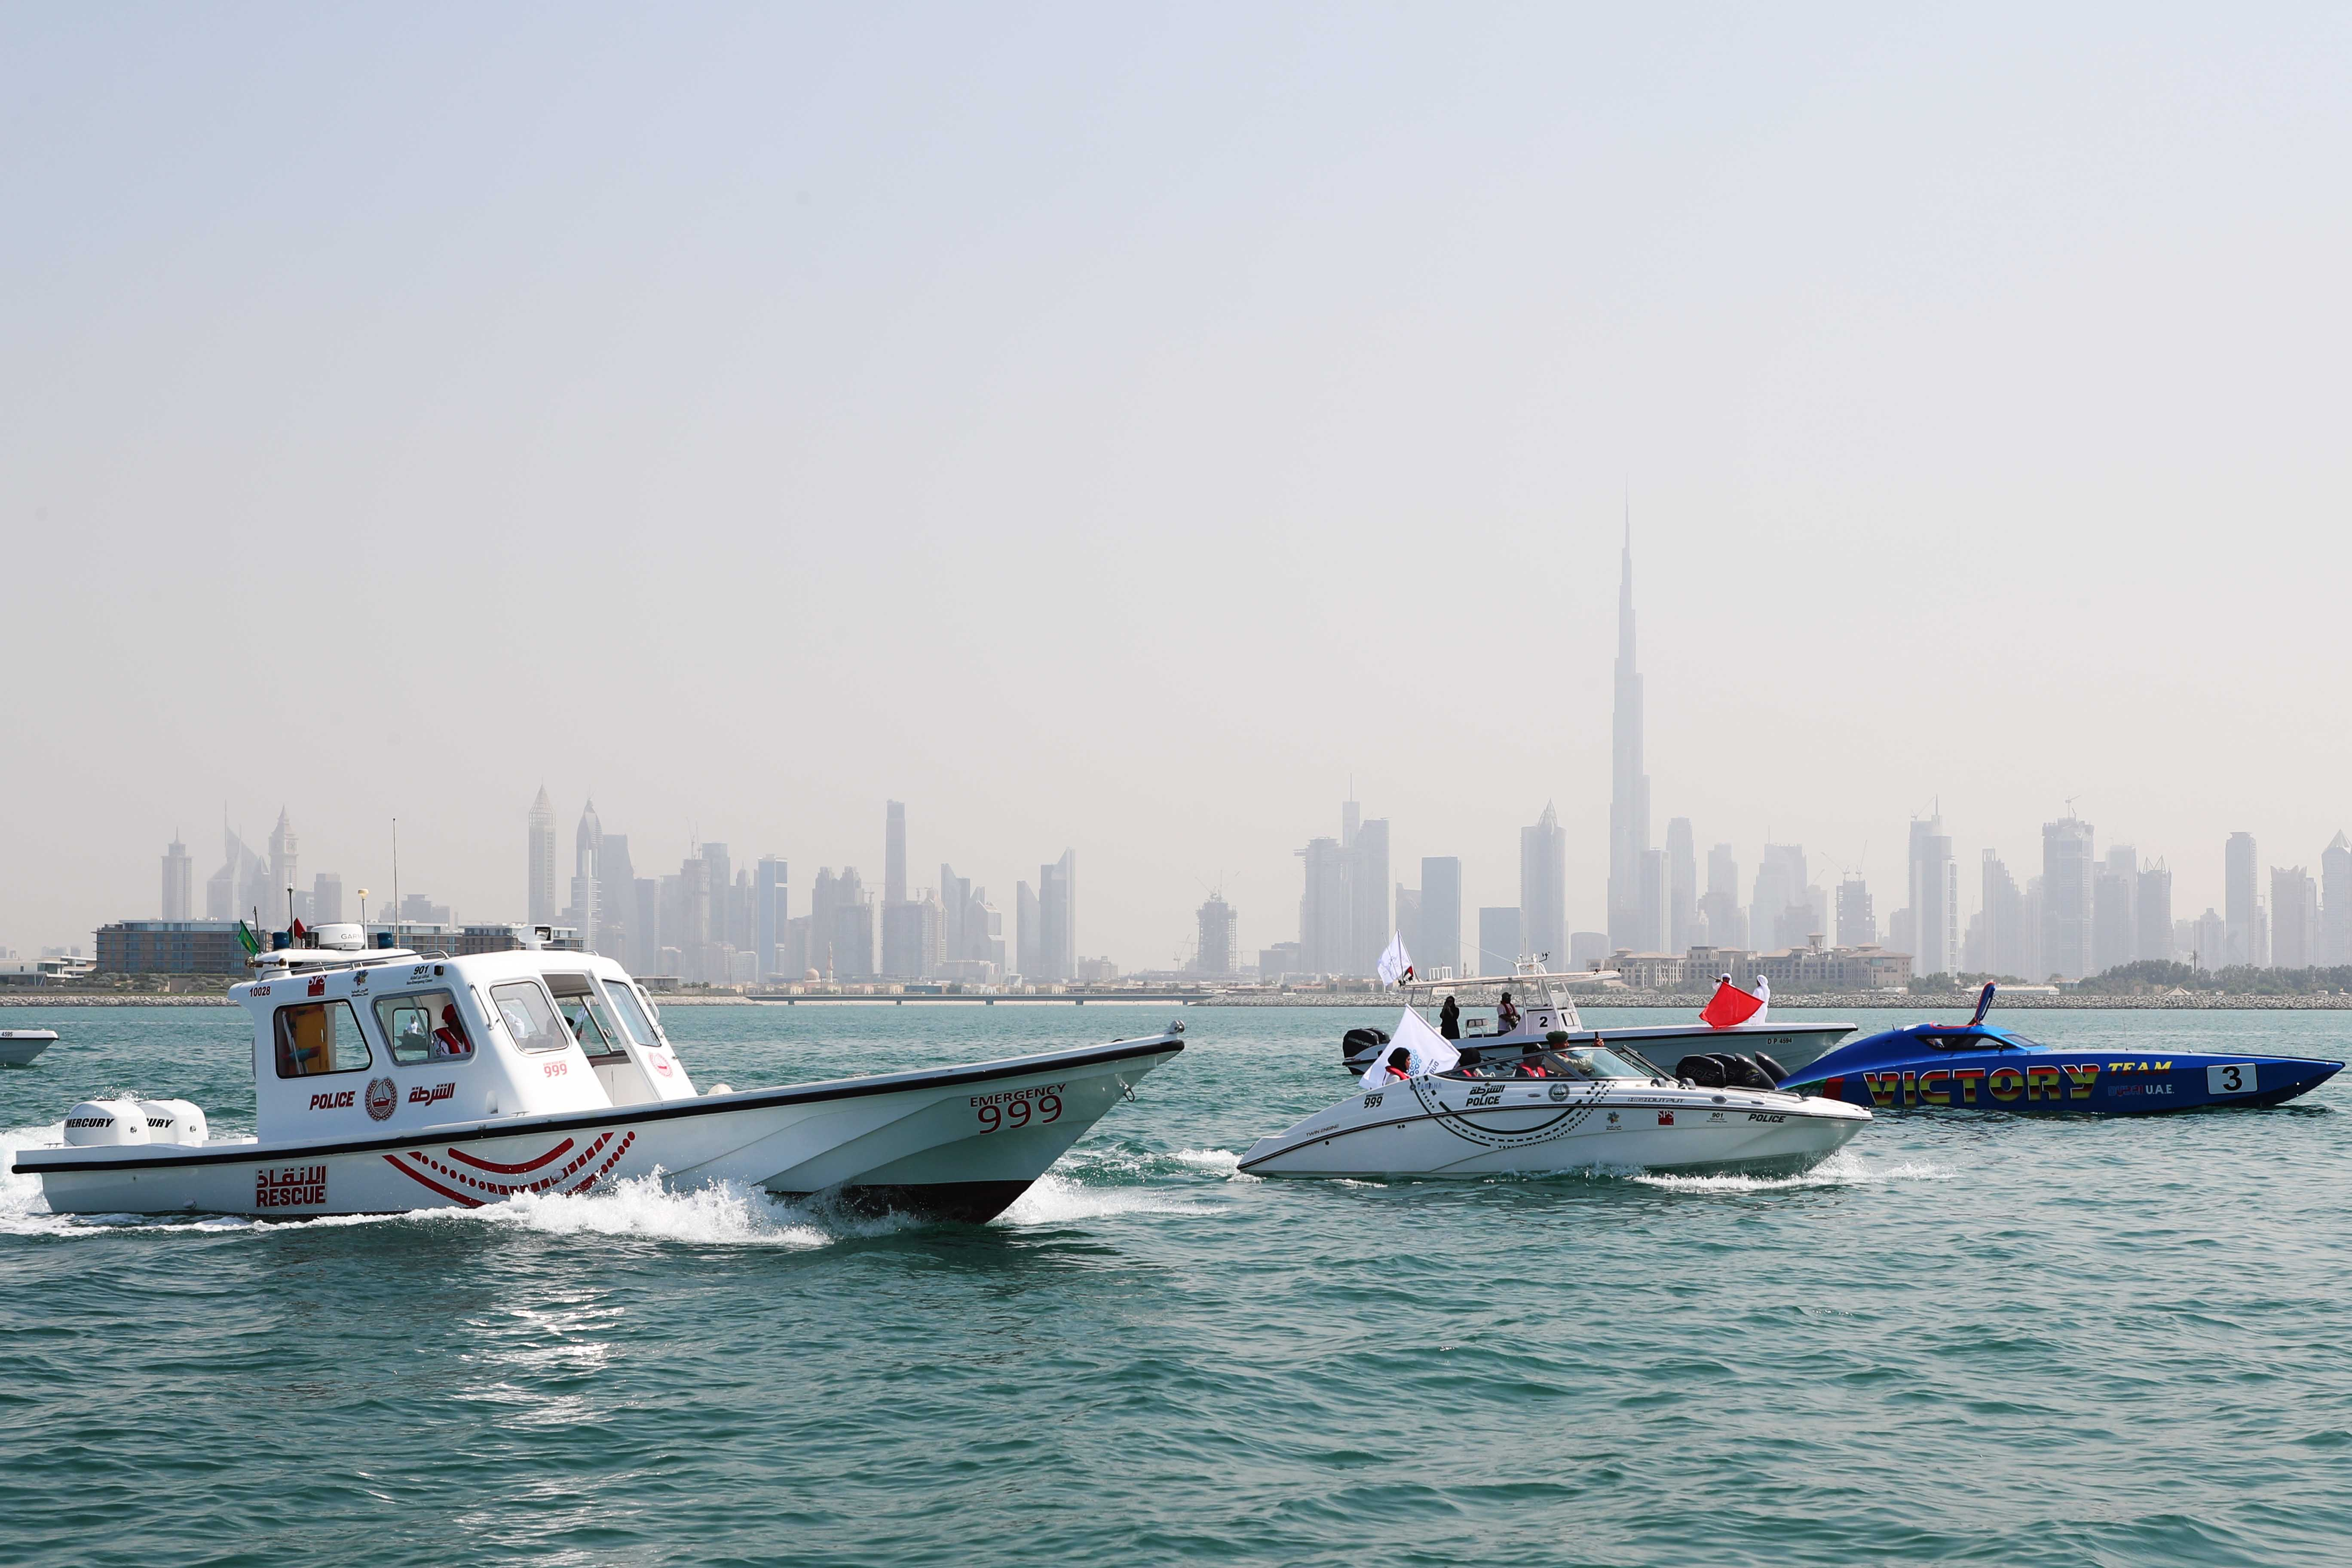 Blue Caravan embellish the Shore of Jumeirah with various Marine Sports People